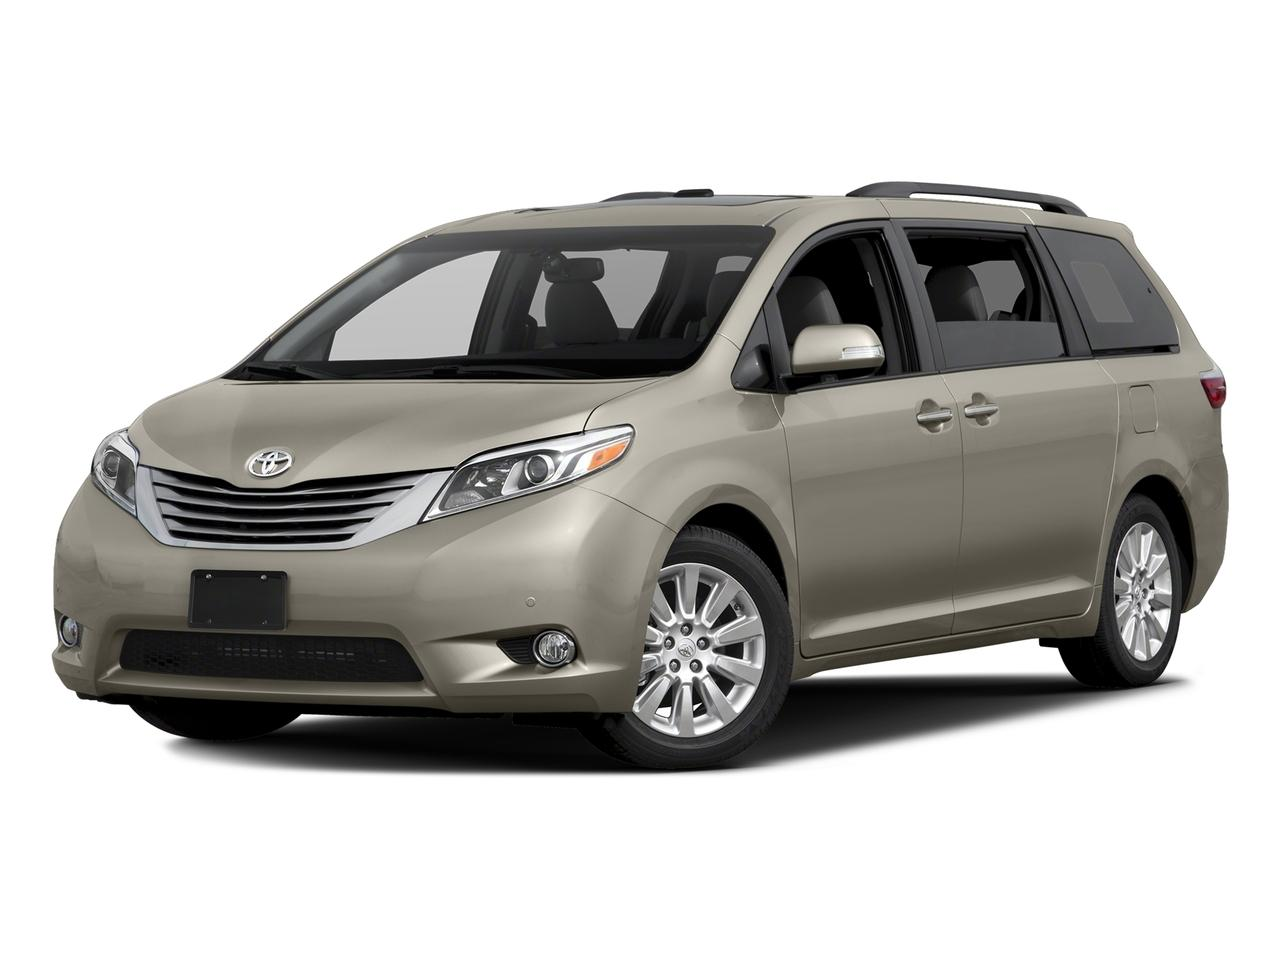 2017 Toyota Sienna Vehicle Photo in Prince Frederick, MD 20678